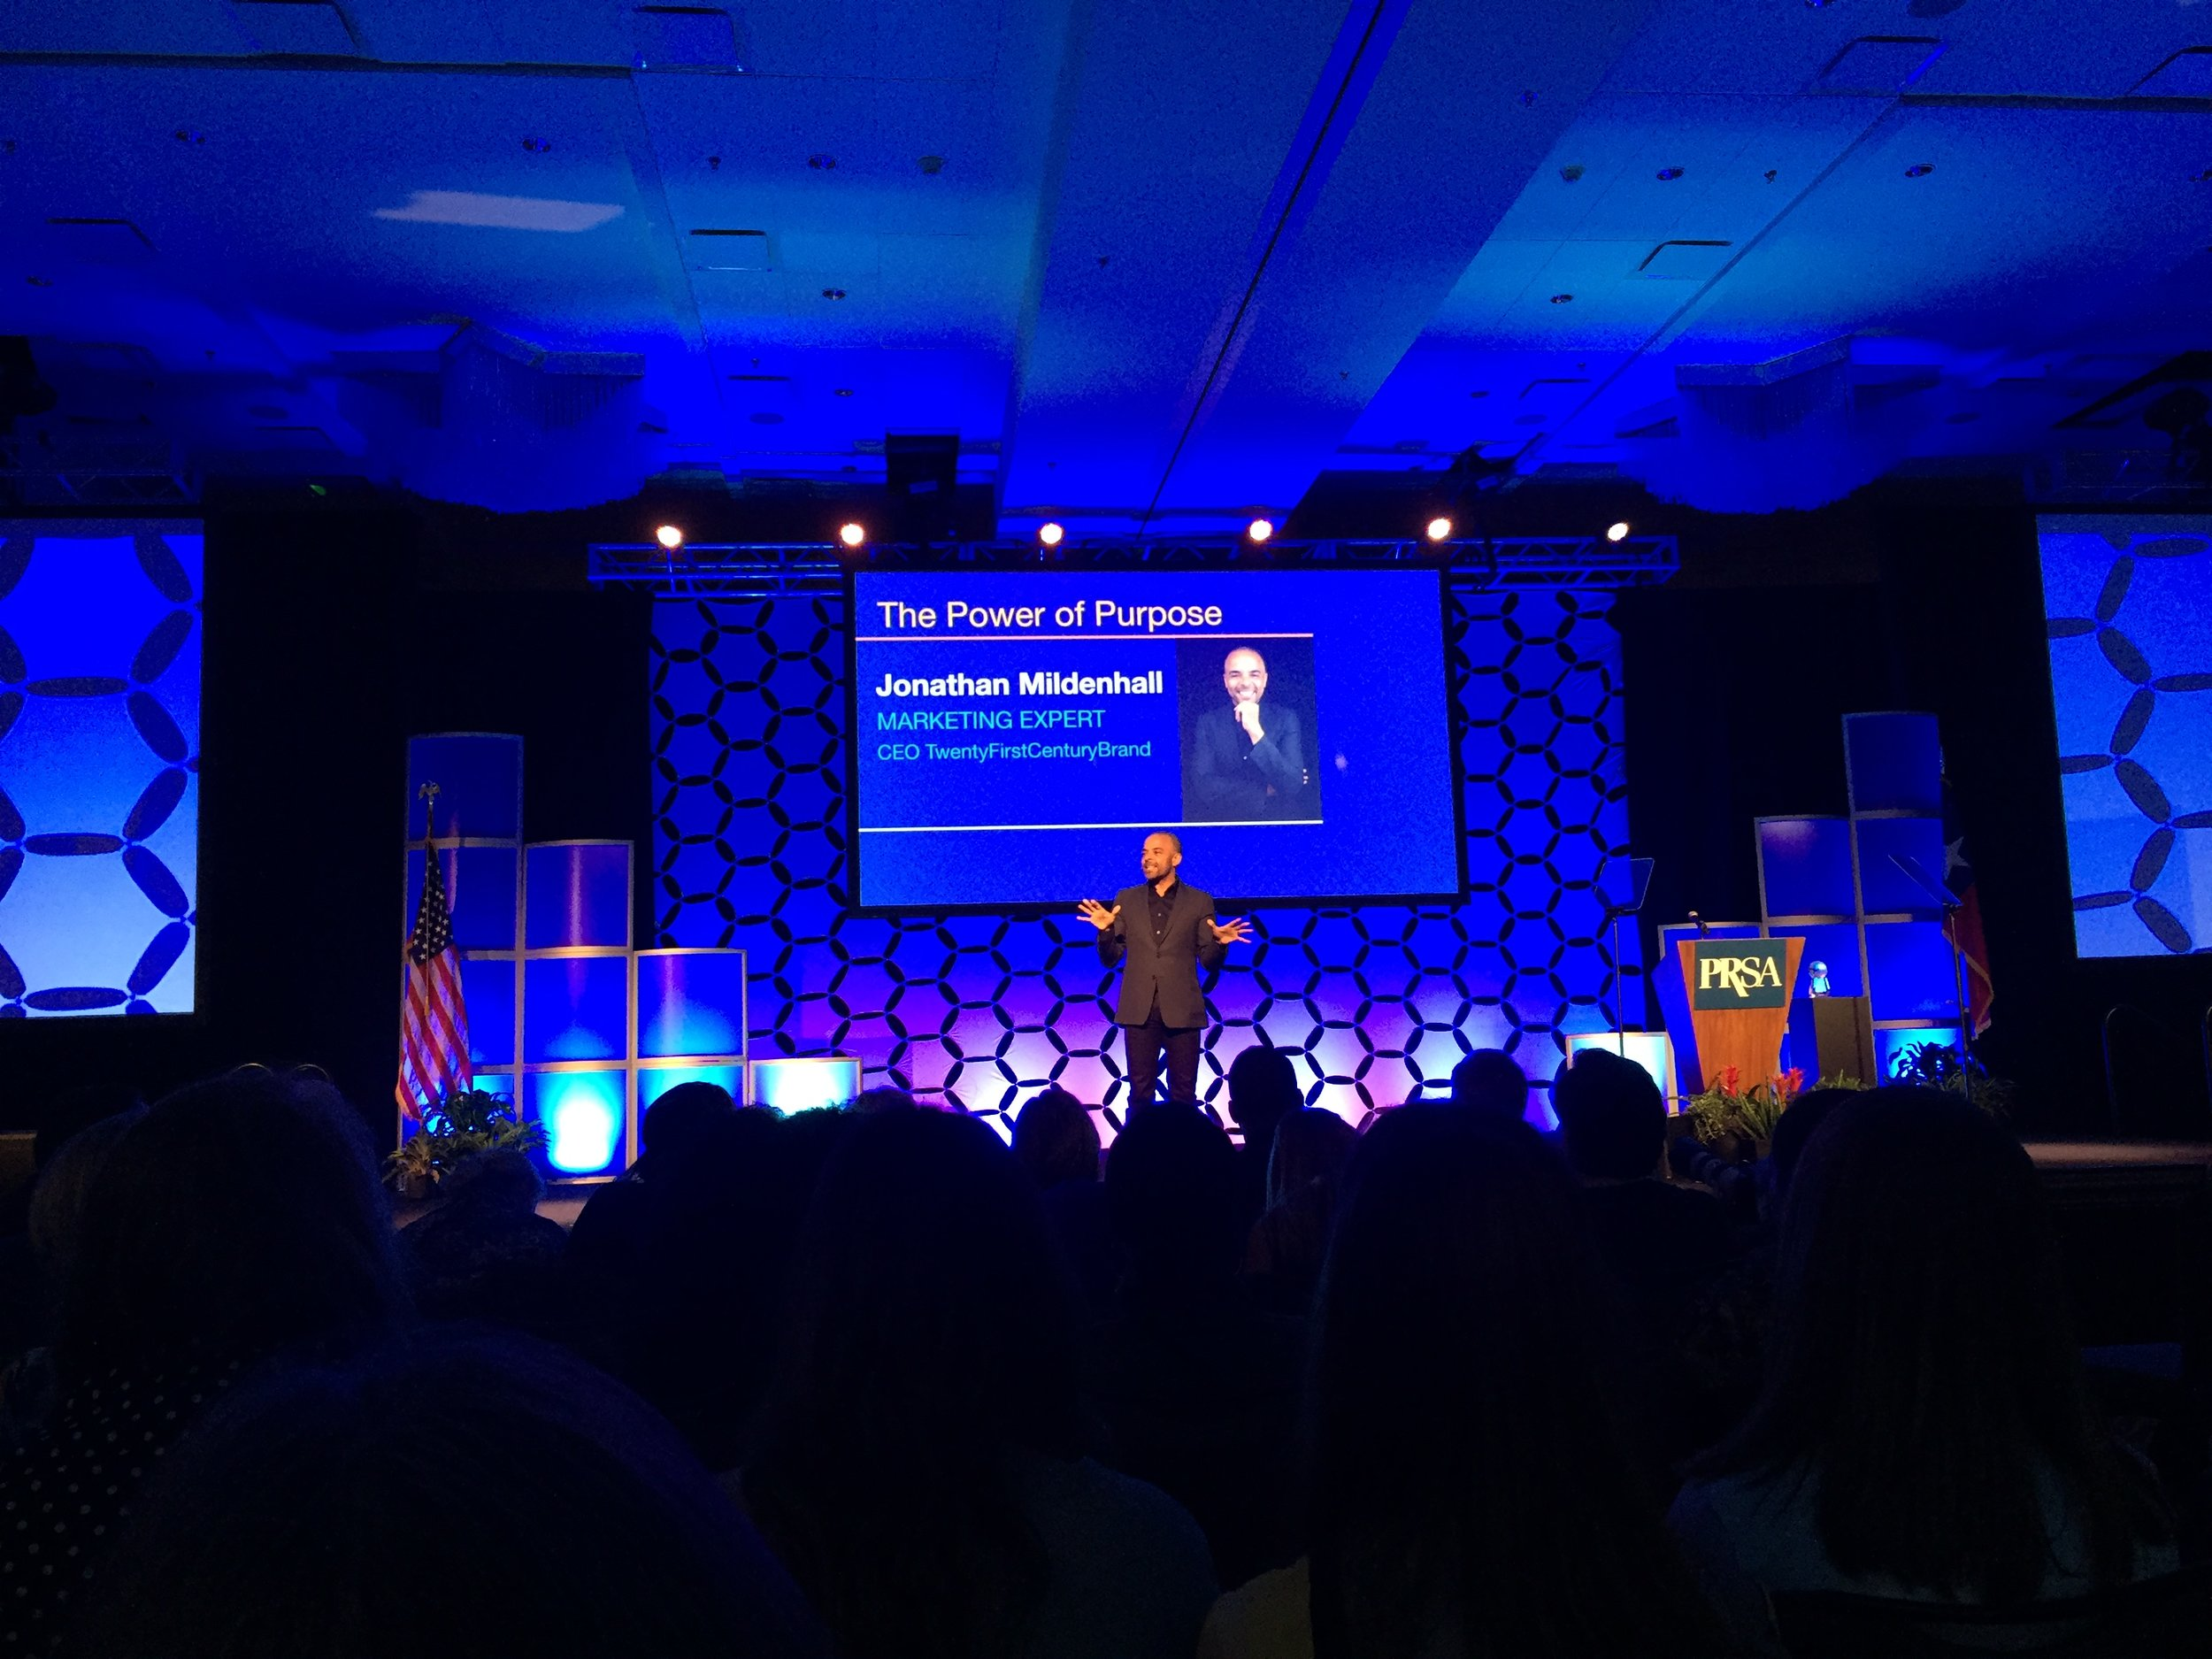 2018 PRSA International Conference keynote